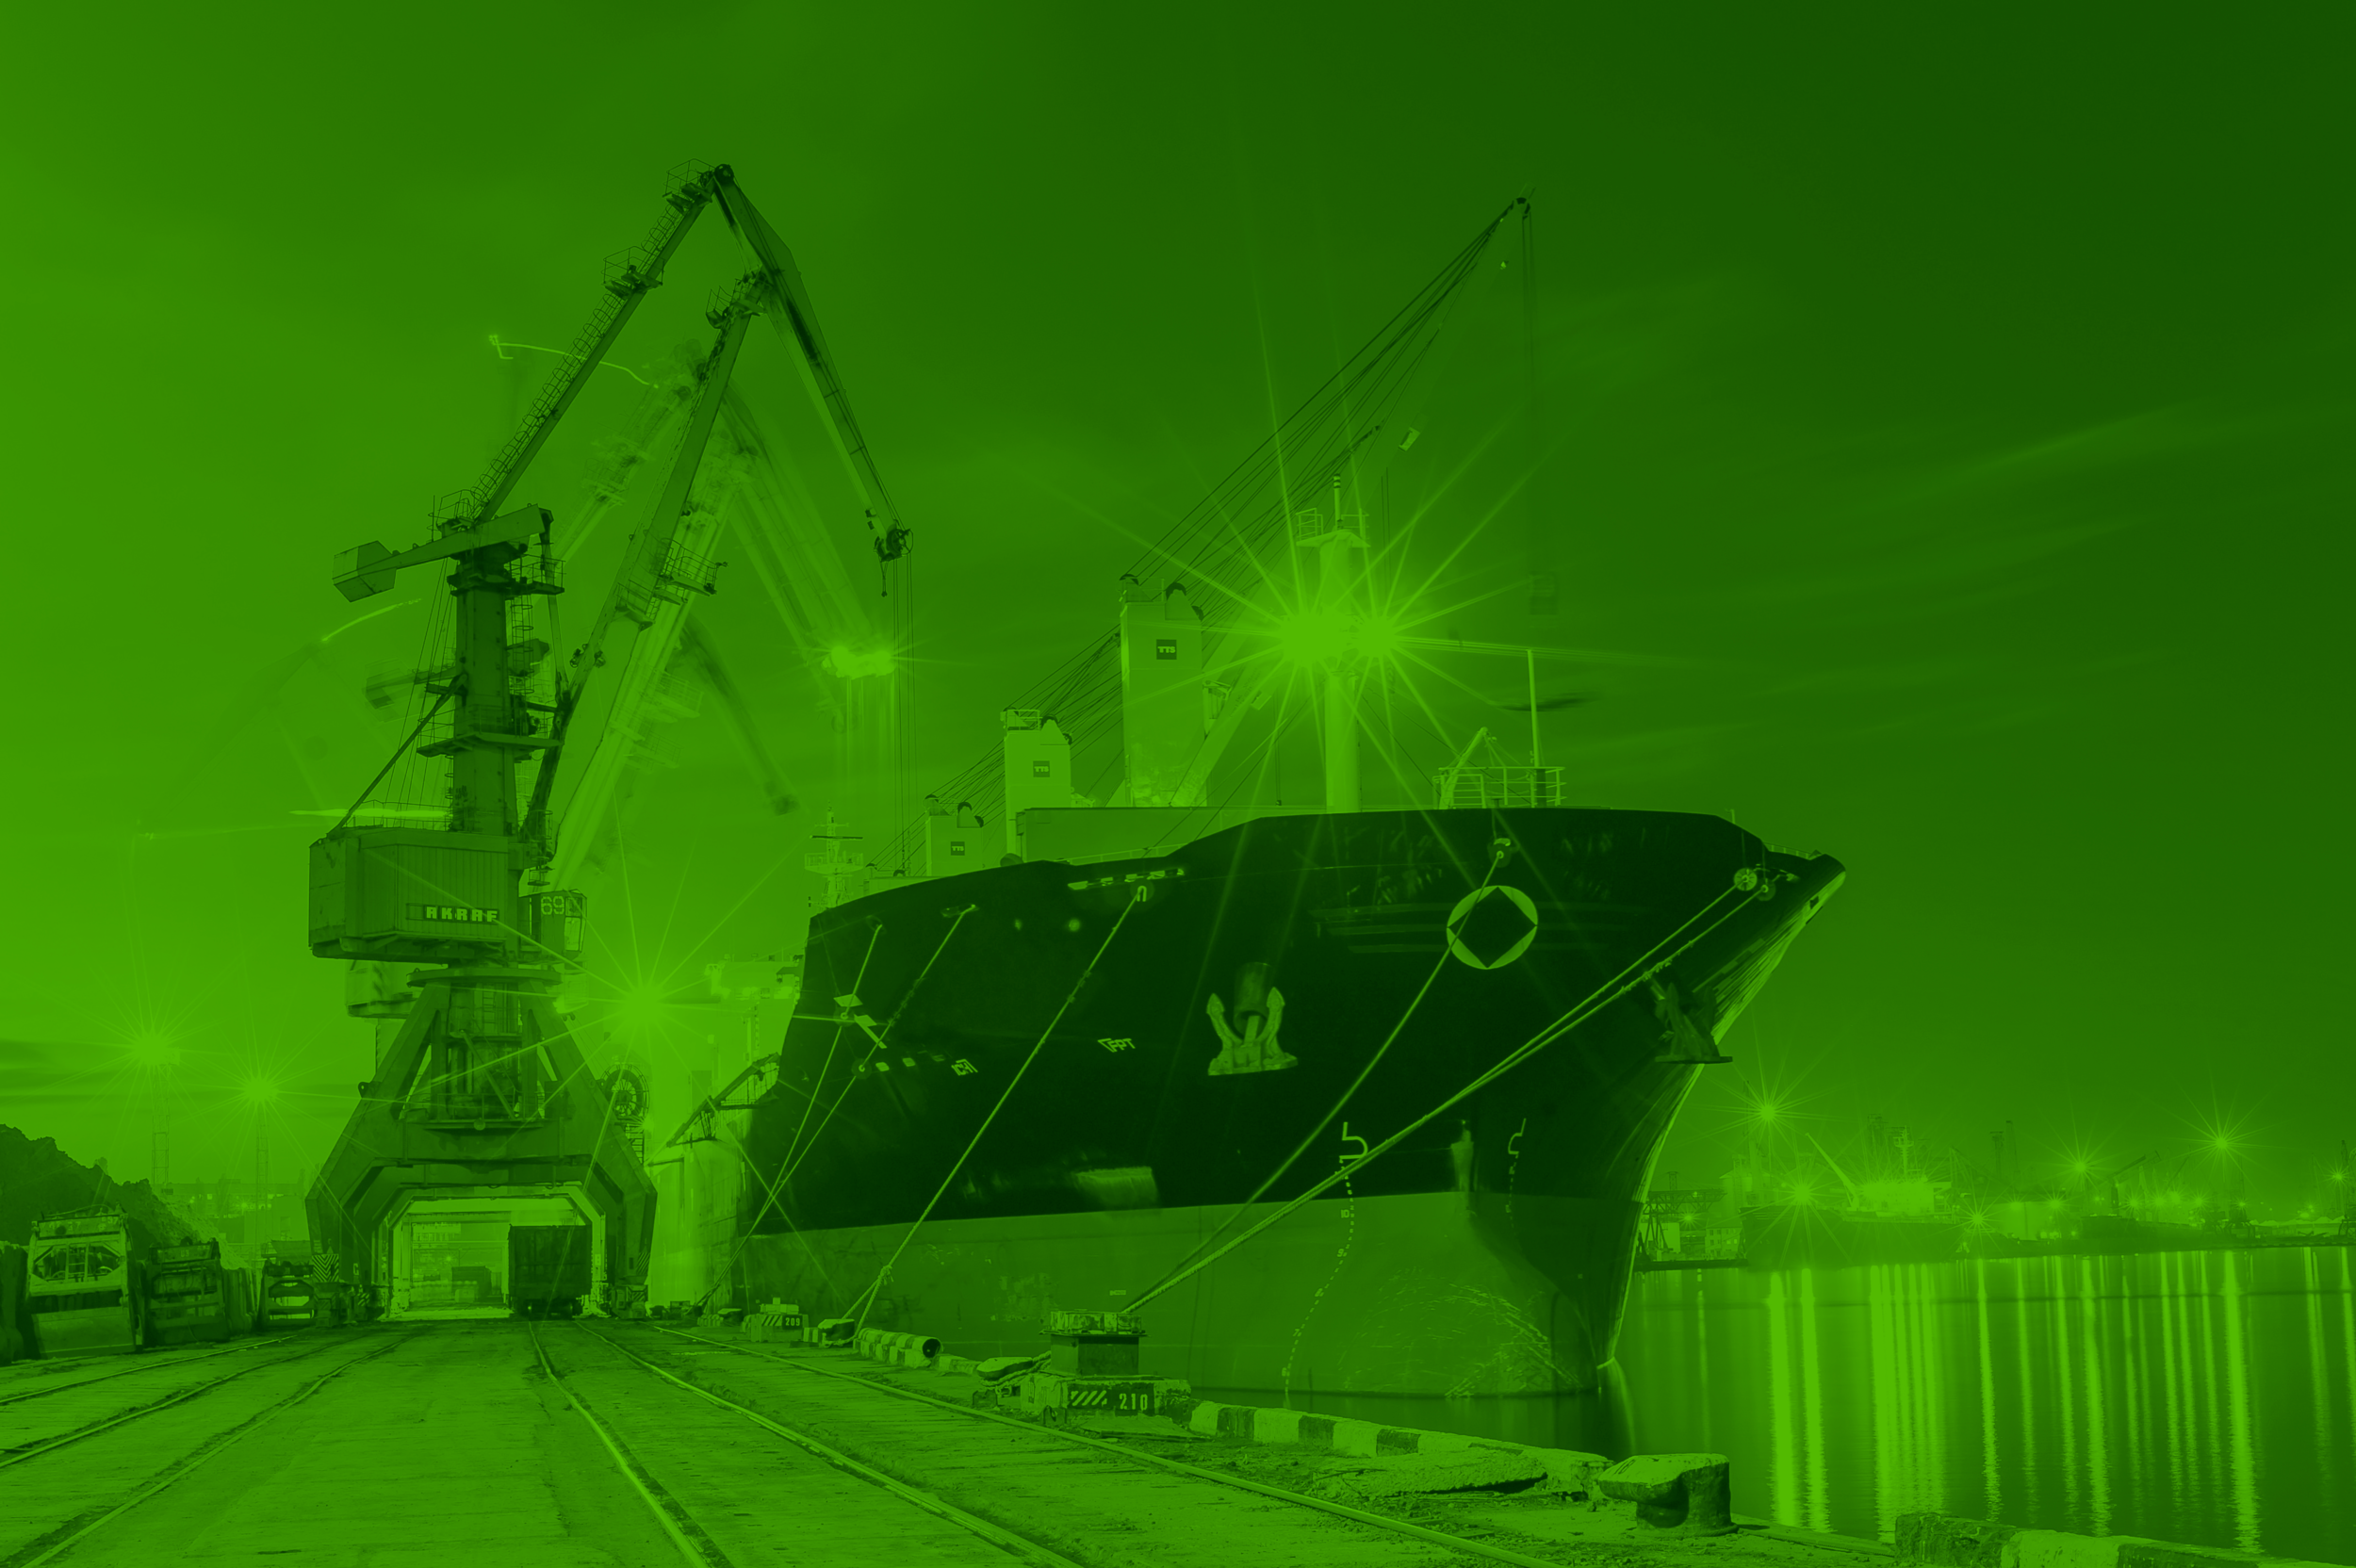 SEA FREIGHT - View our full services